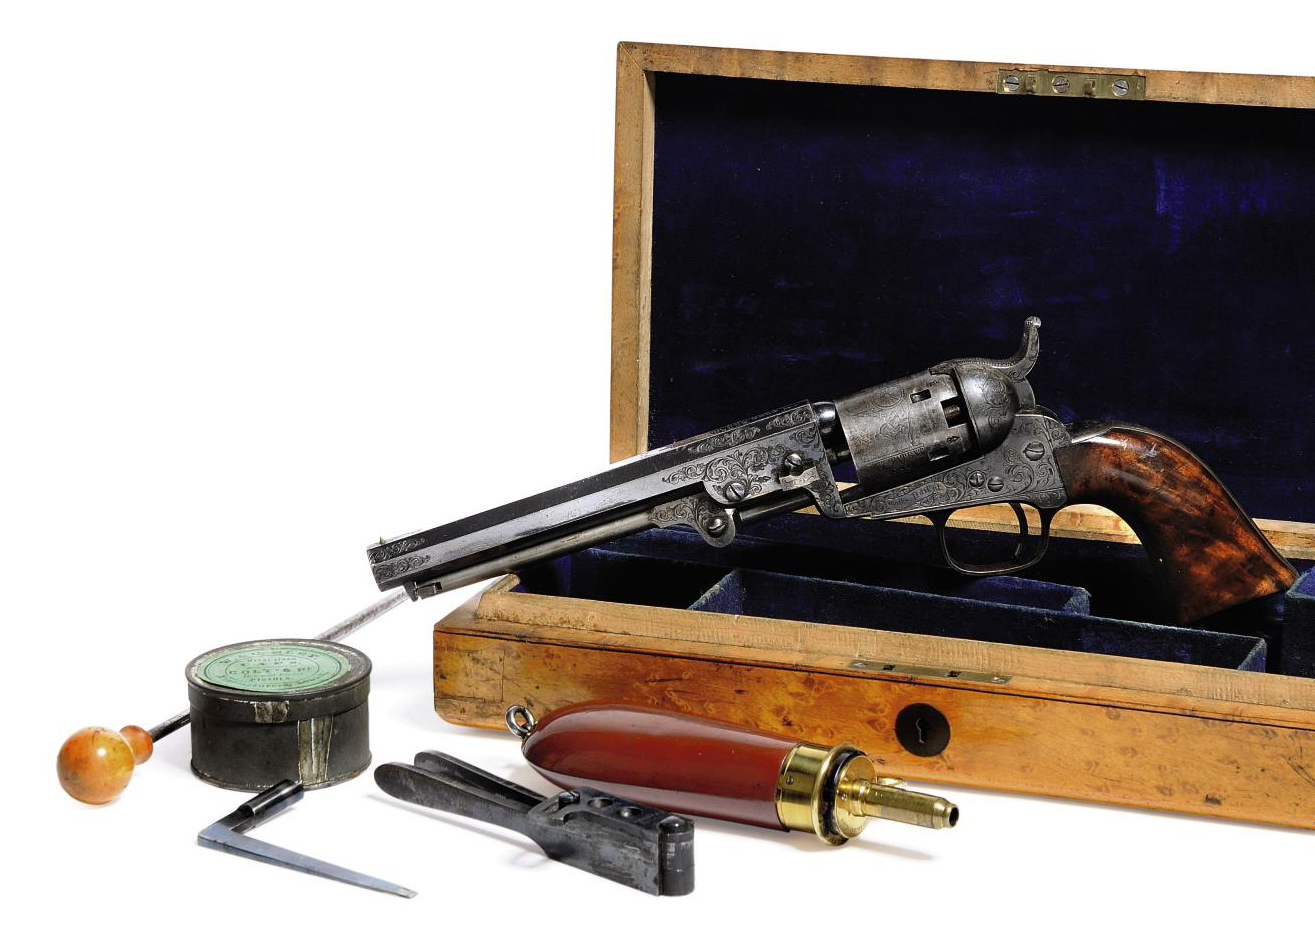 A FINE MAPLE CASED FACTORY ENGRAVED .31 'MODEL 1849' FIVE-SHOT SINGLE-ACTION PERCUSSION POCKET REVOLVER